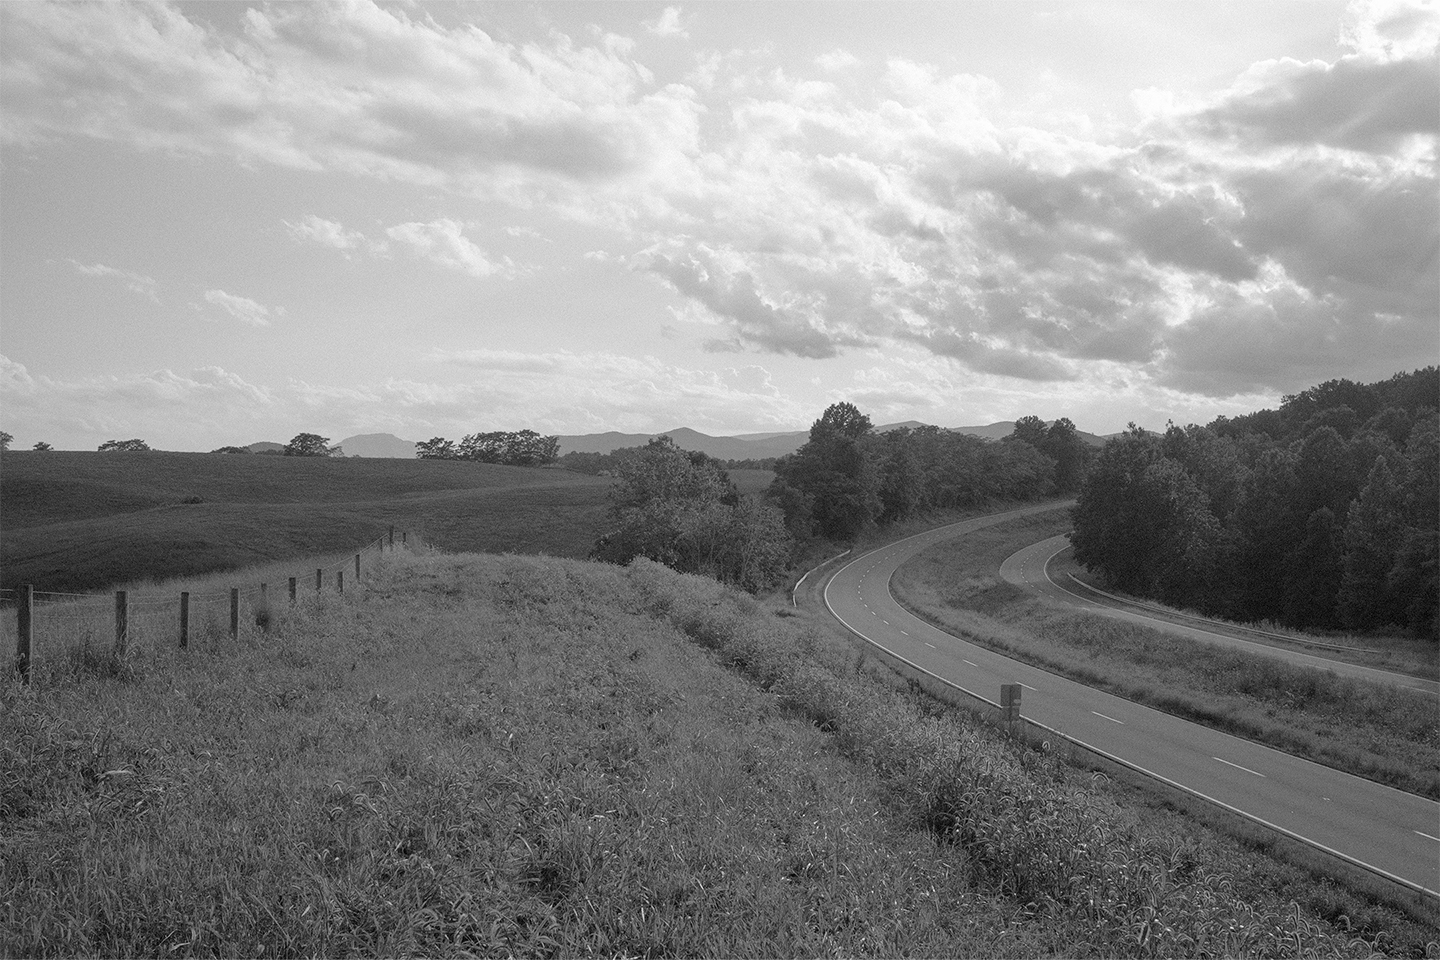 Looking west on Rt. 211.  Rappahannock County, Virginia.  2014.